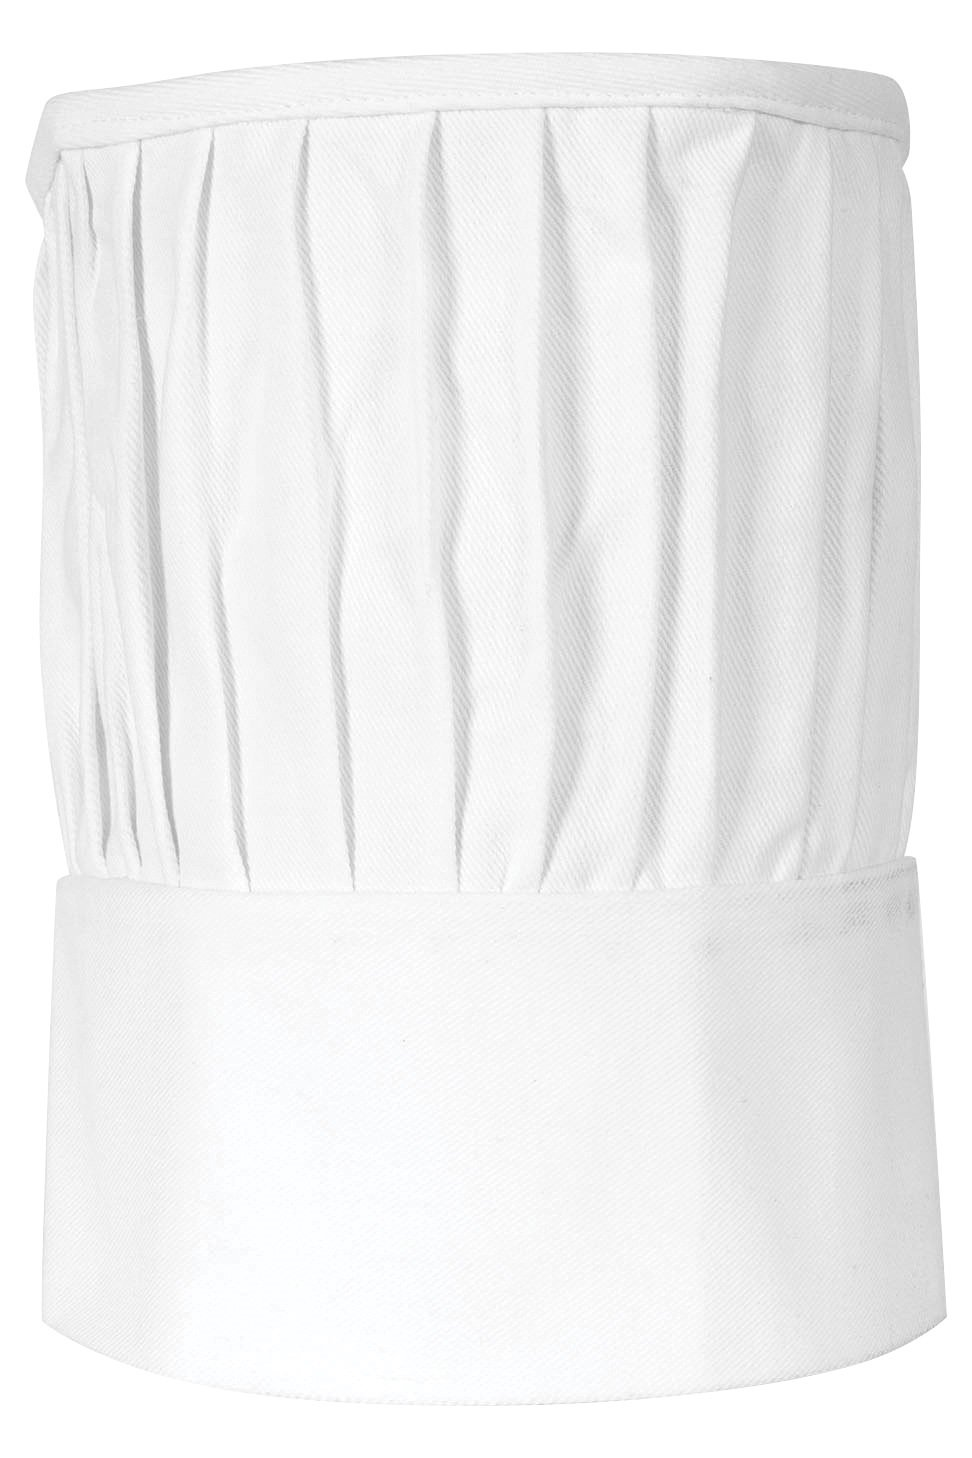 Gourmet Classics Adjustable Chef Toque Blanche, Adult Size, 100-Percent Cotton 02827